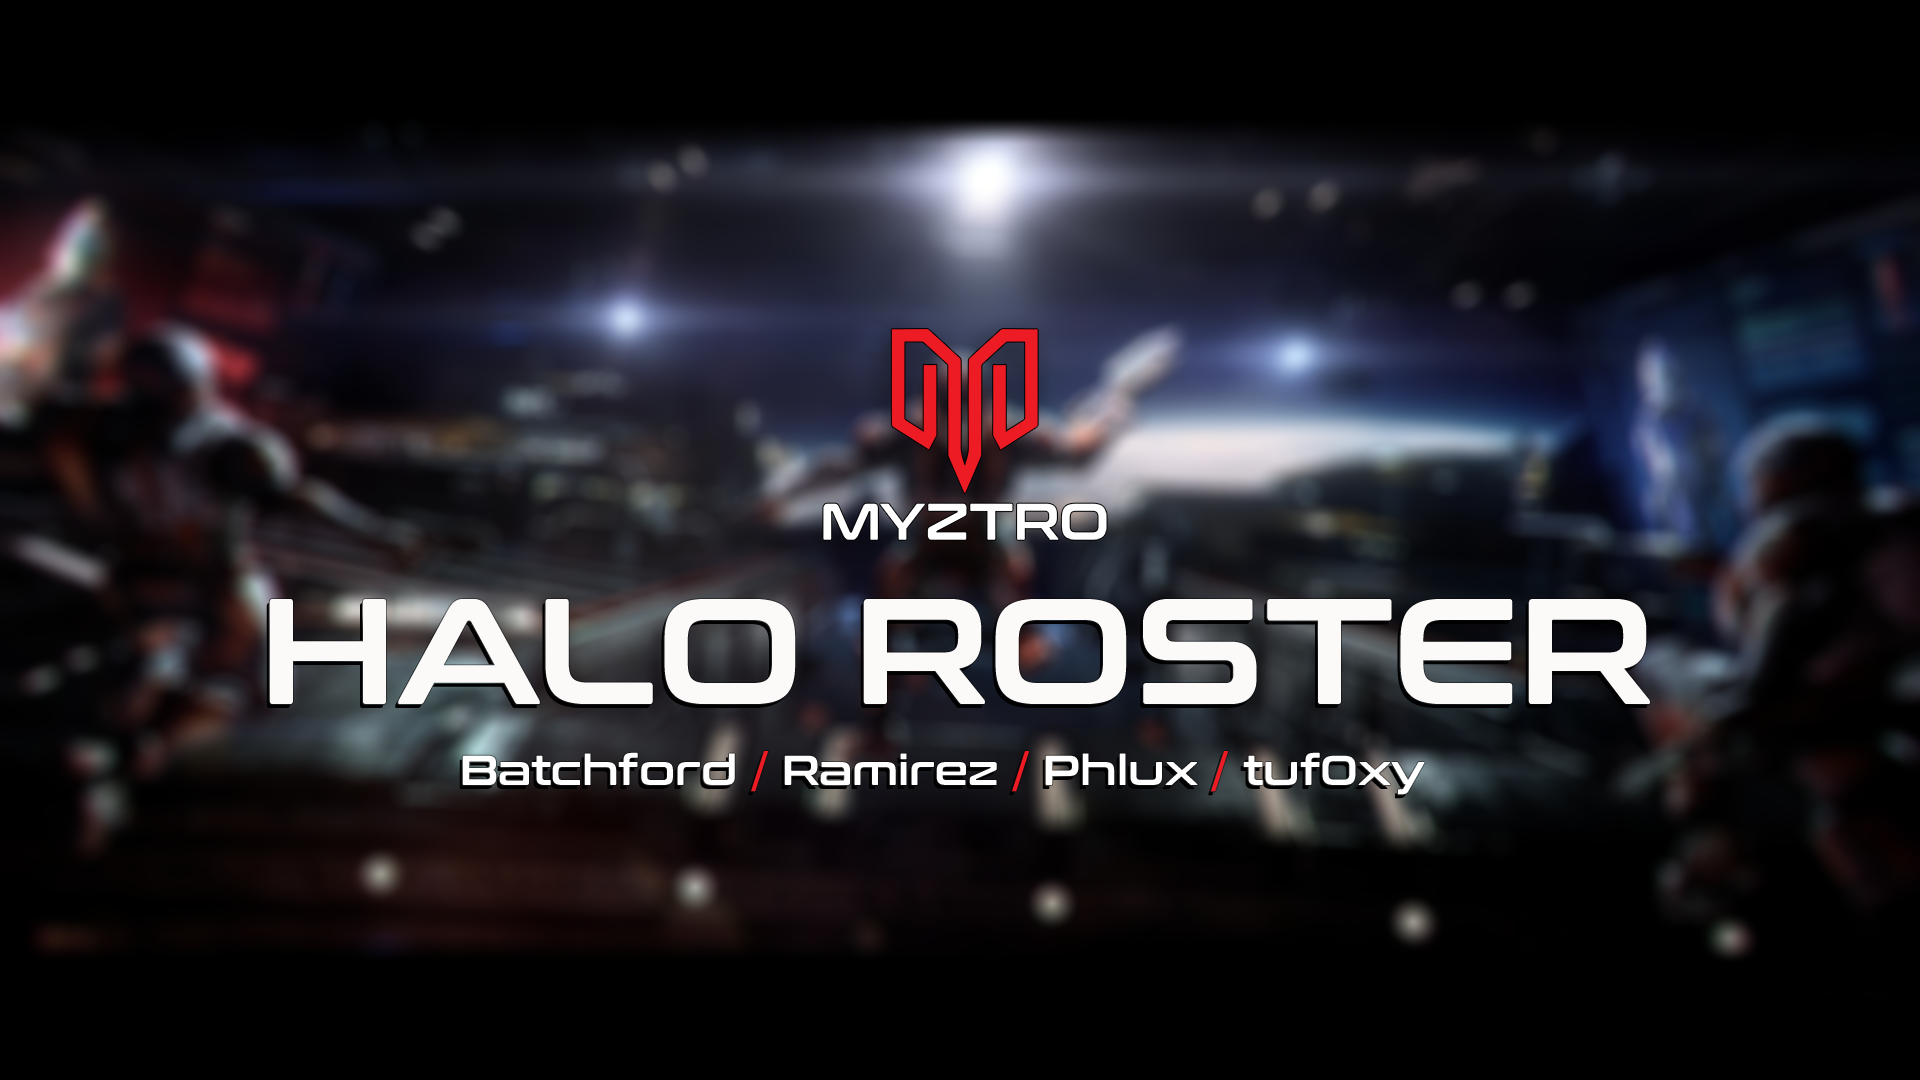 Myztro Gaming is delighted to announce our entry into competitive Halo